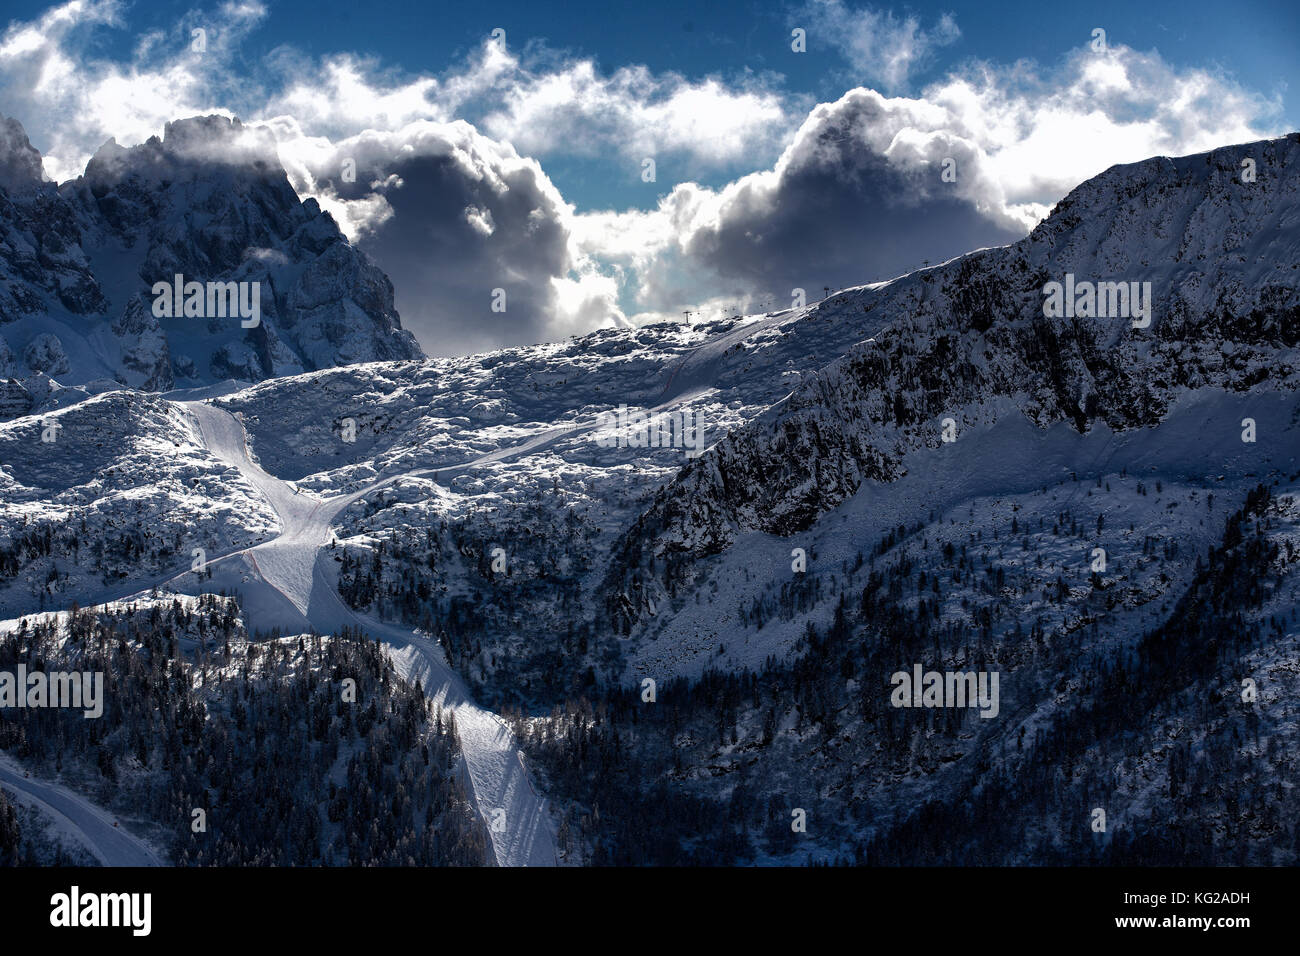 ski resort landscape with good winter weather - Stock Image